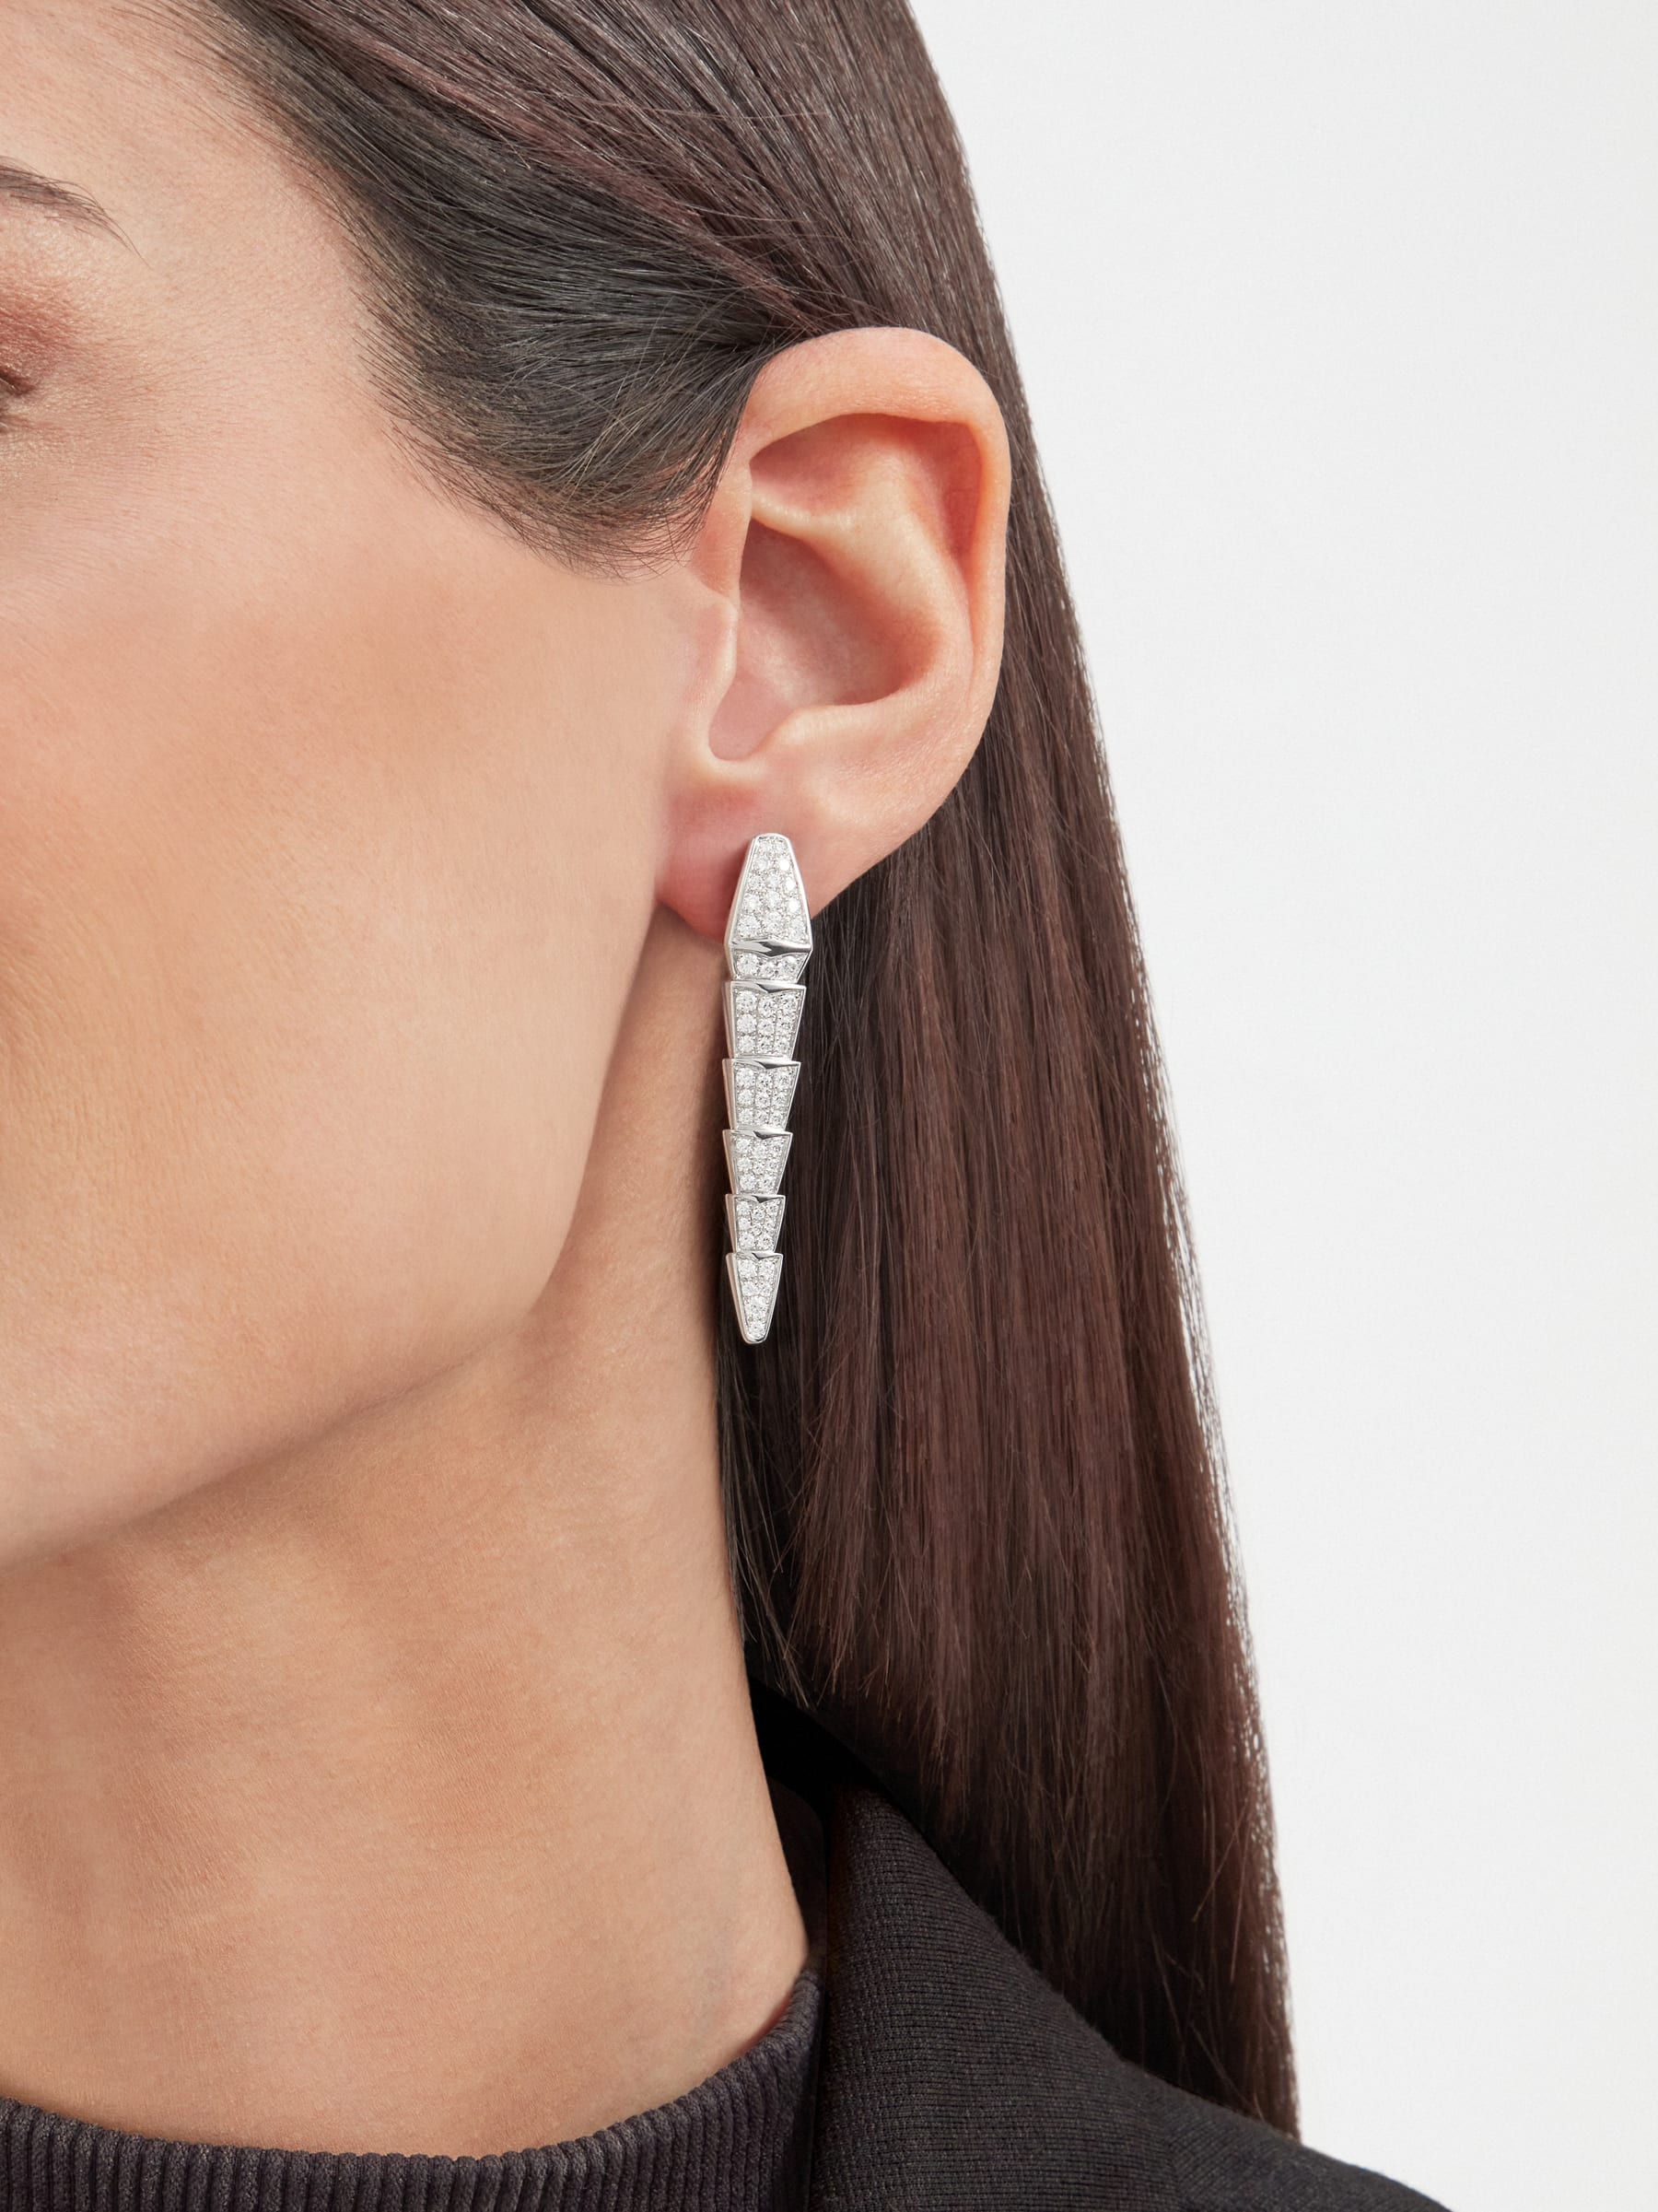 Serpenti Viper earrings in 18 kt white gold, set with full pavé diamonds. 348320 image 4